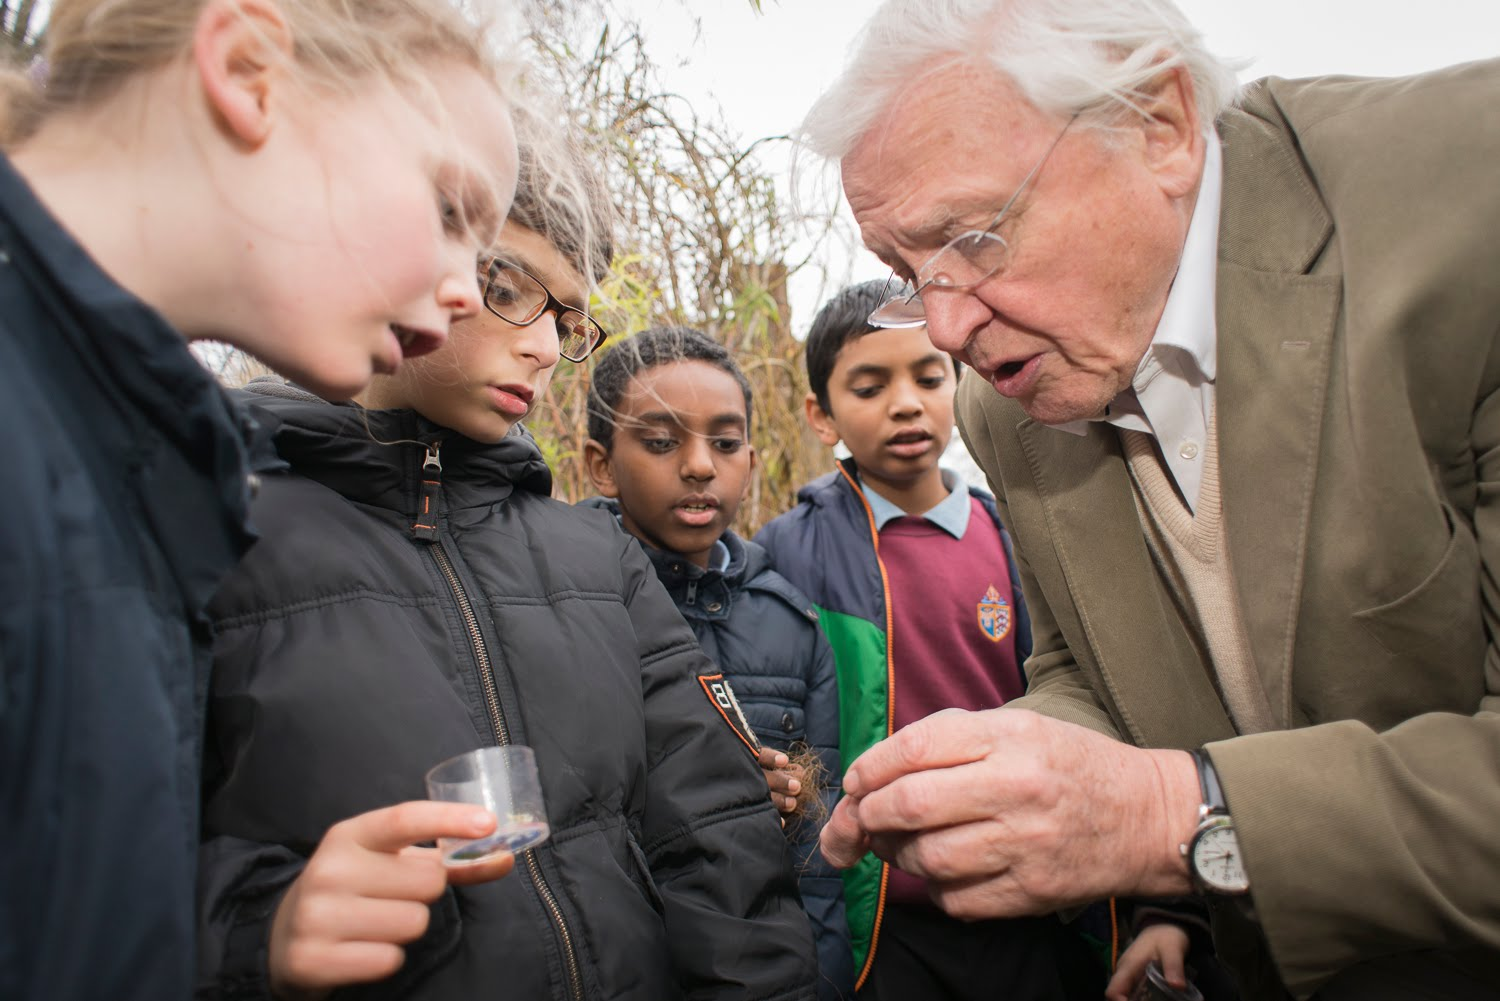 Featured image: Sir David Attenborough at 90: the mesmerising storyteller of the natural world